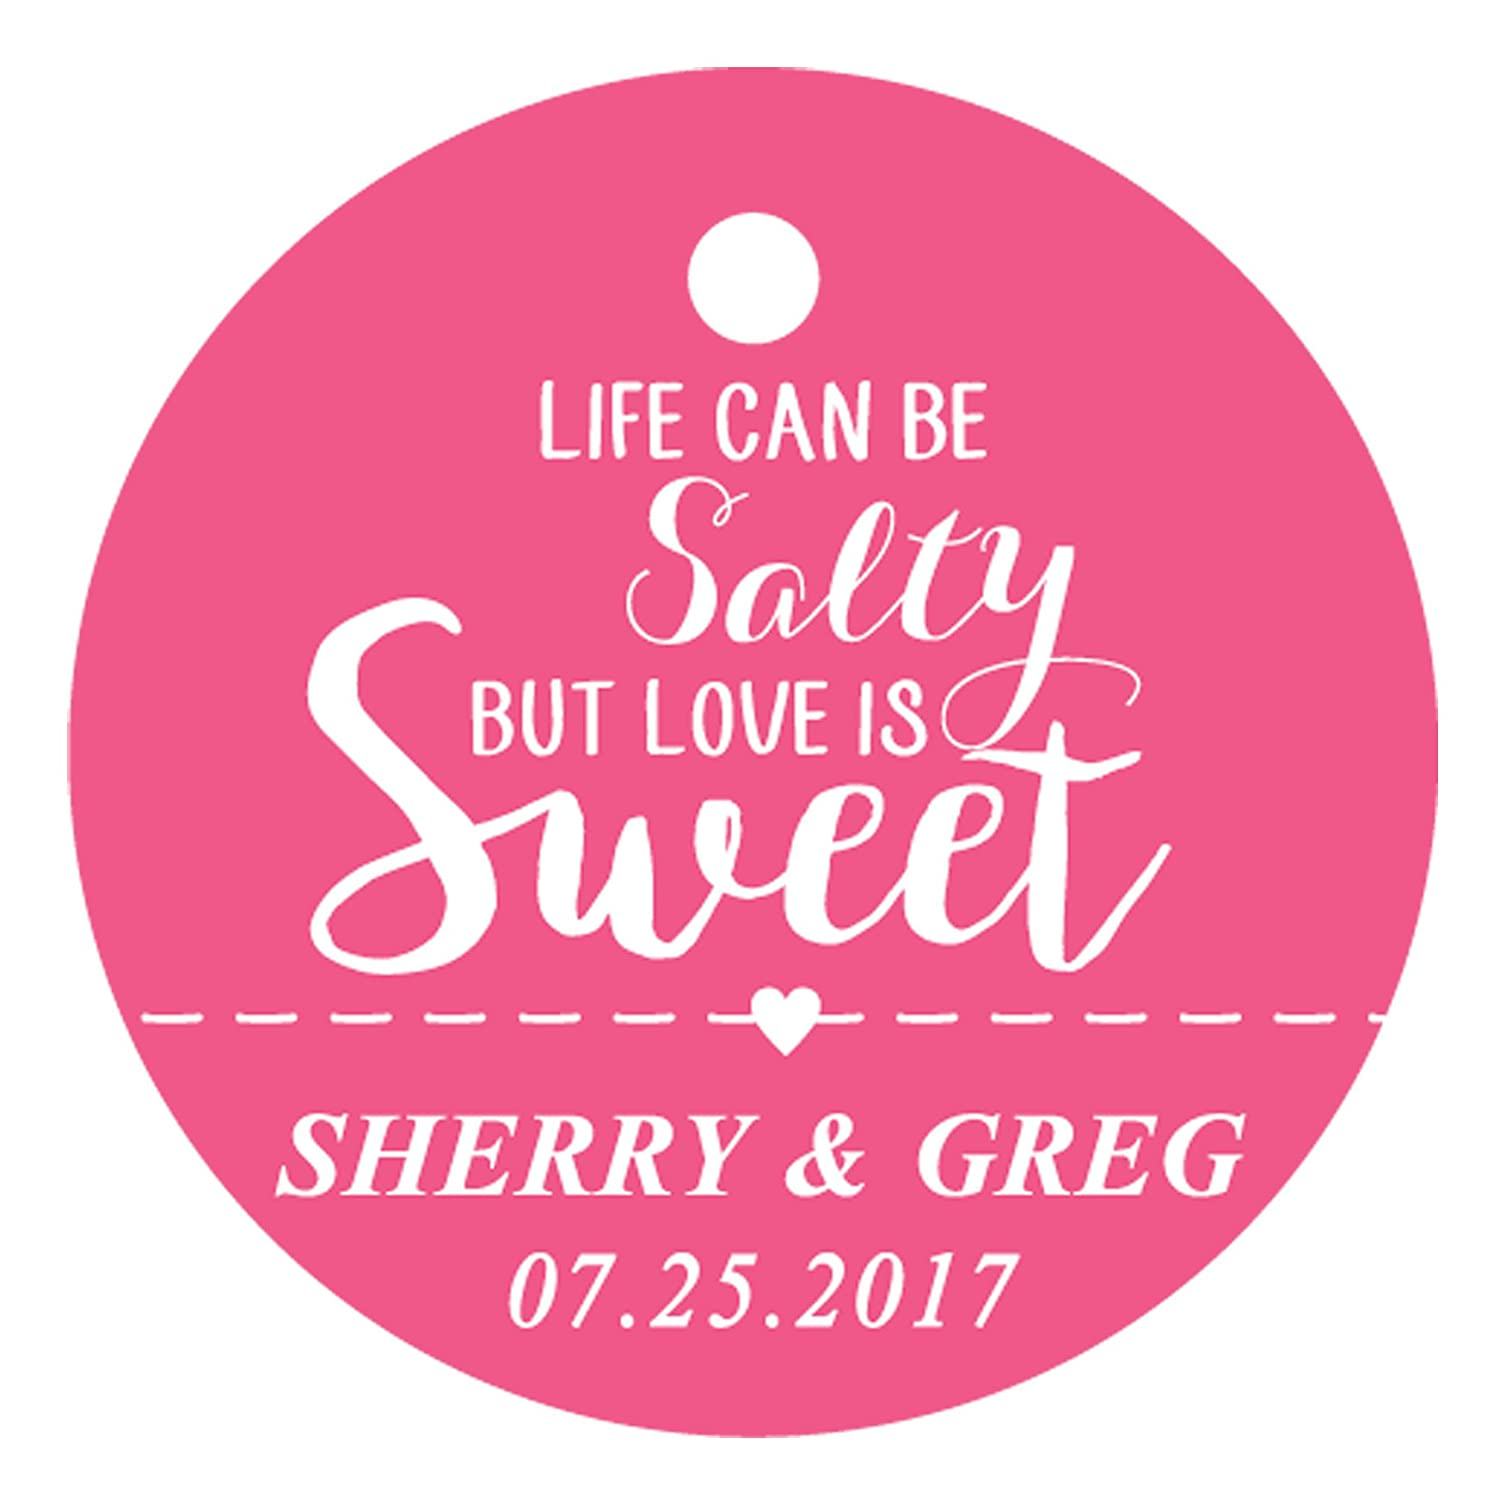 Amazon.com : 100 PCS Life Can Be Salty But Love is Sweet Customized ...